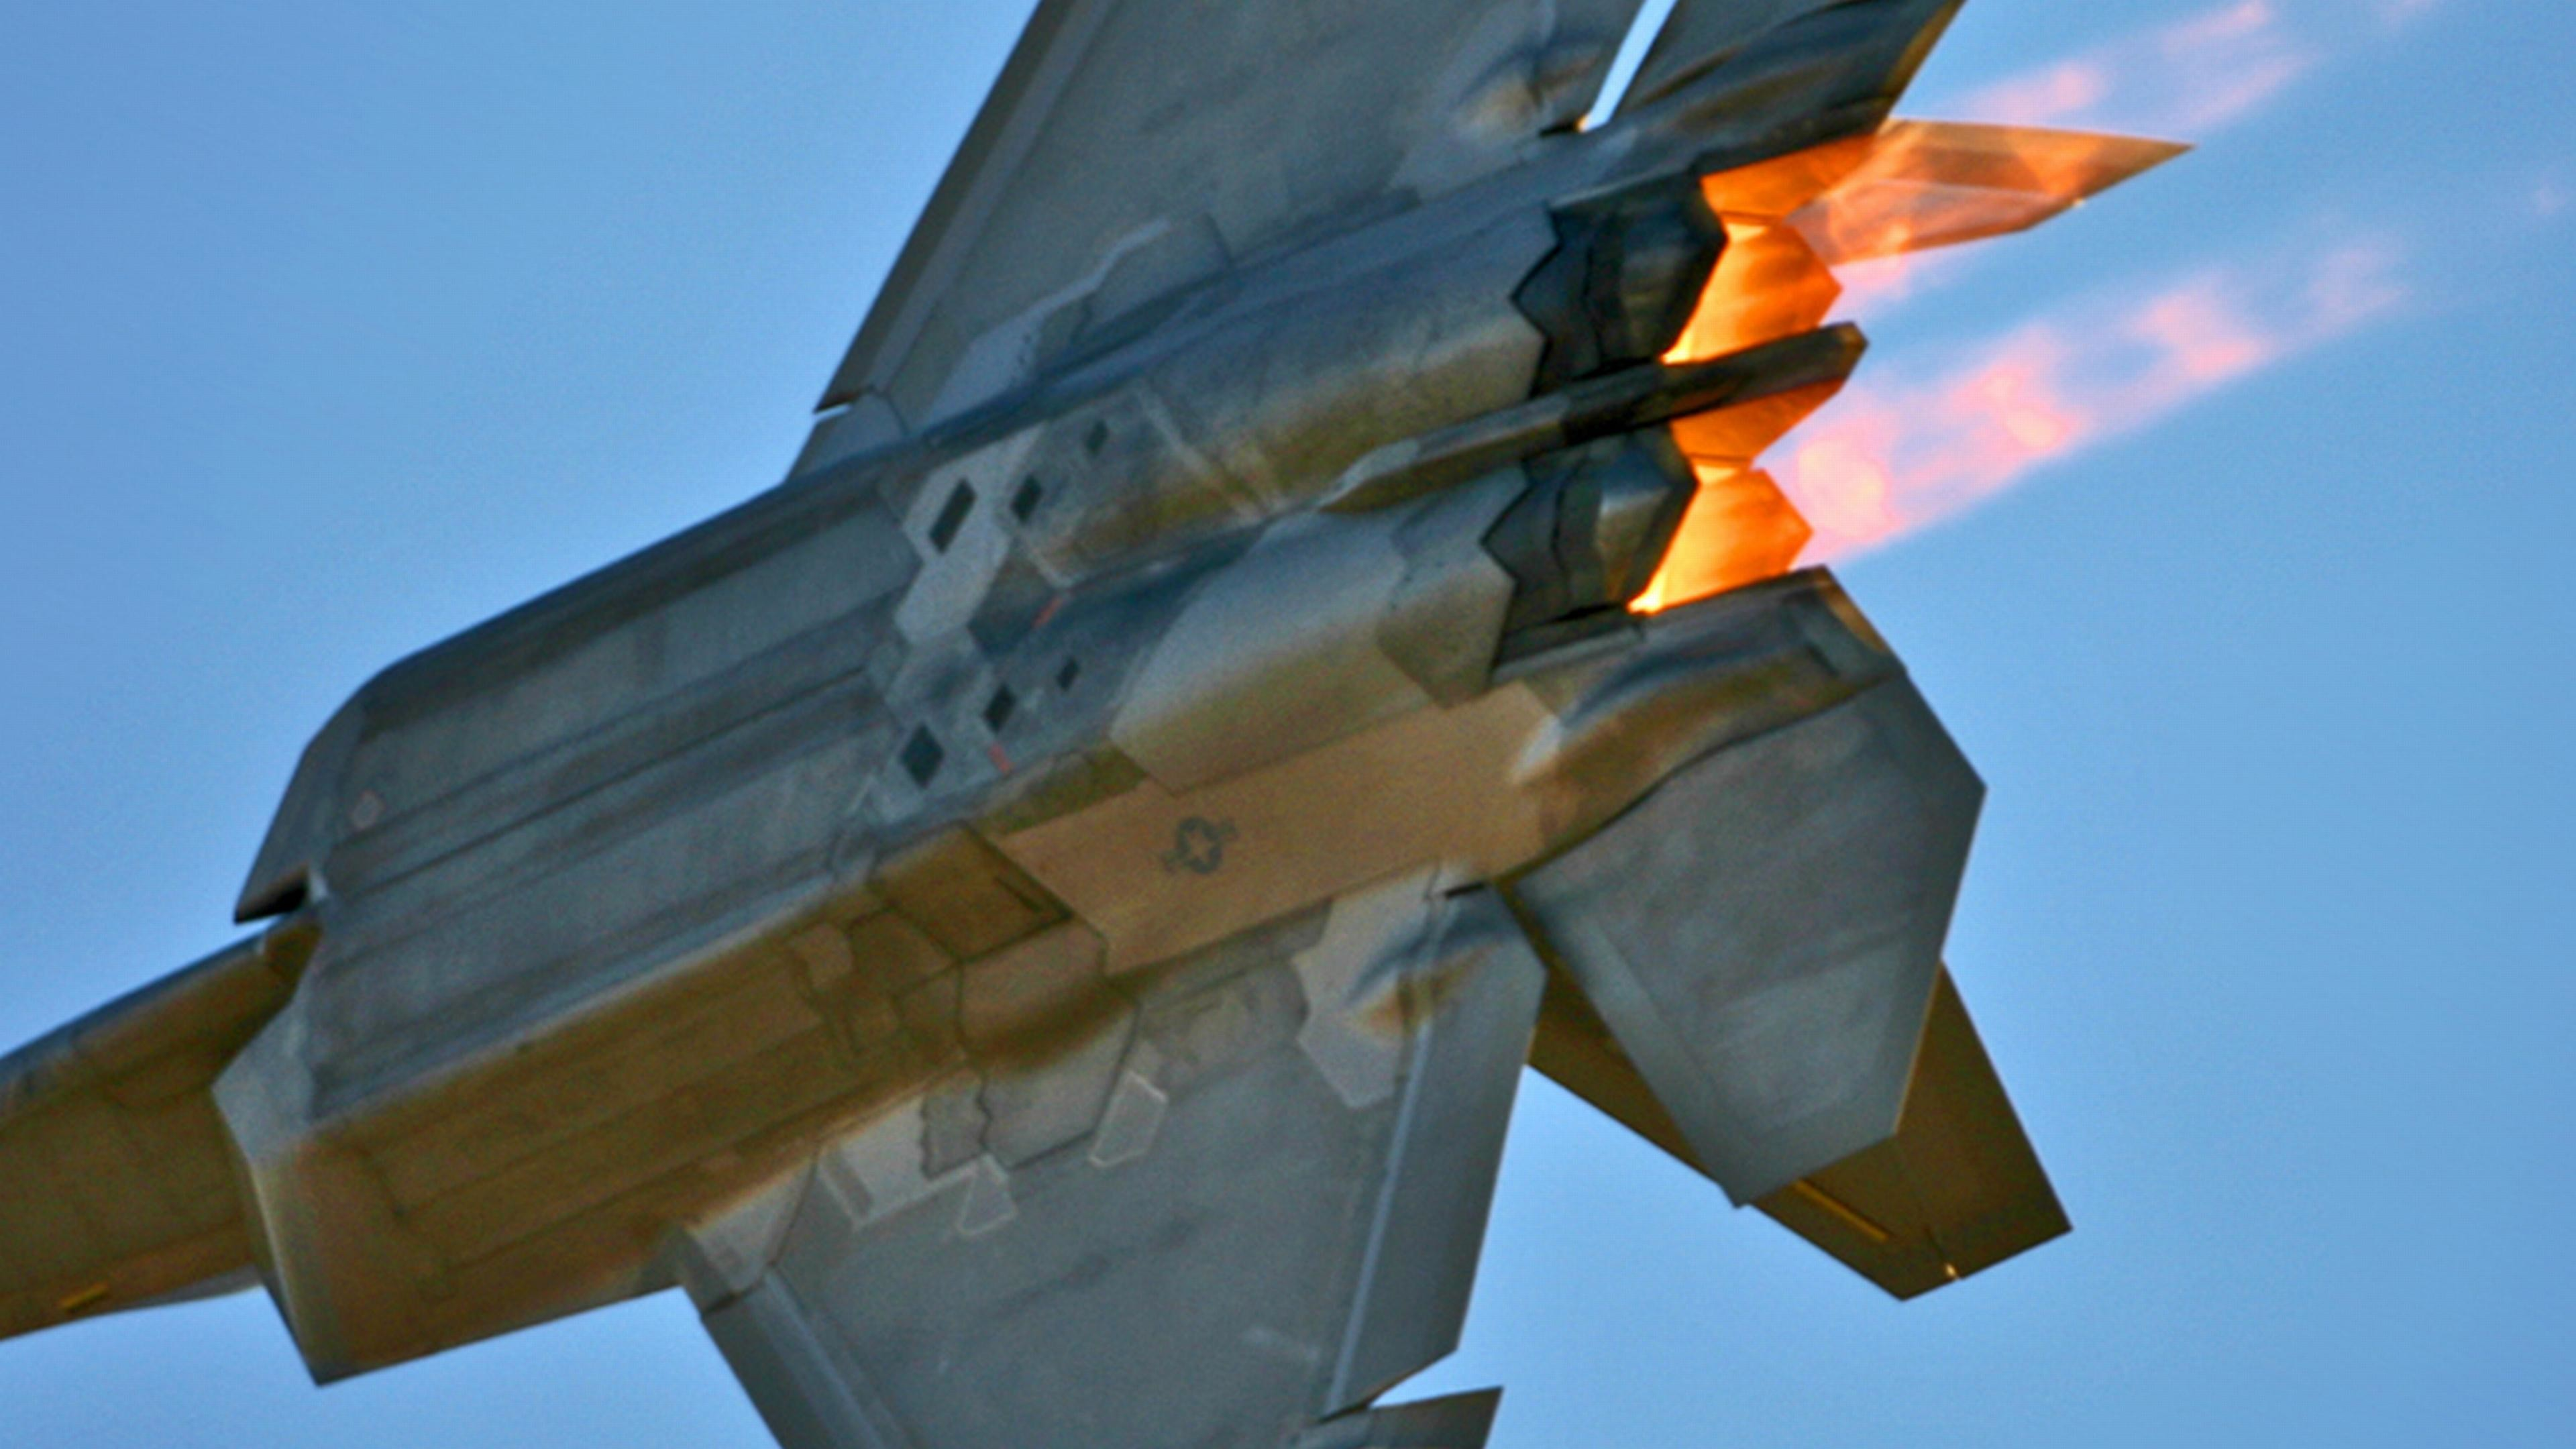 3840x2160 Lockheed Martin F-22 Raptor high definition photo